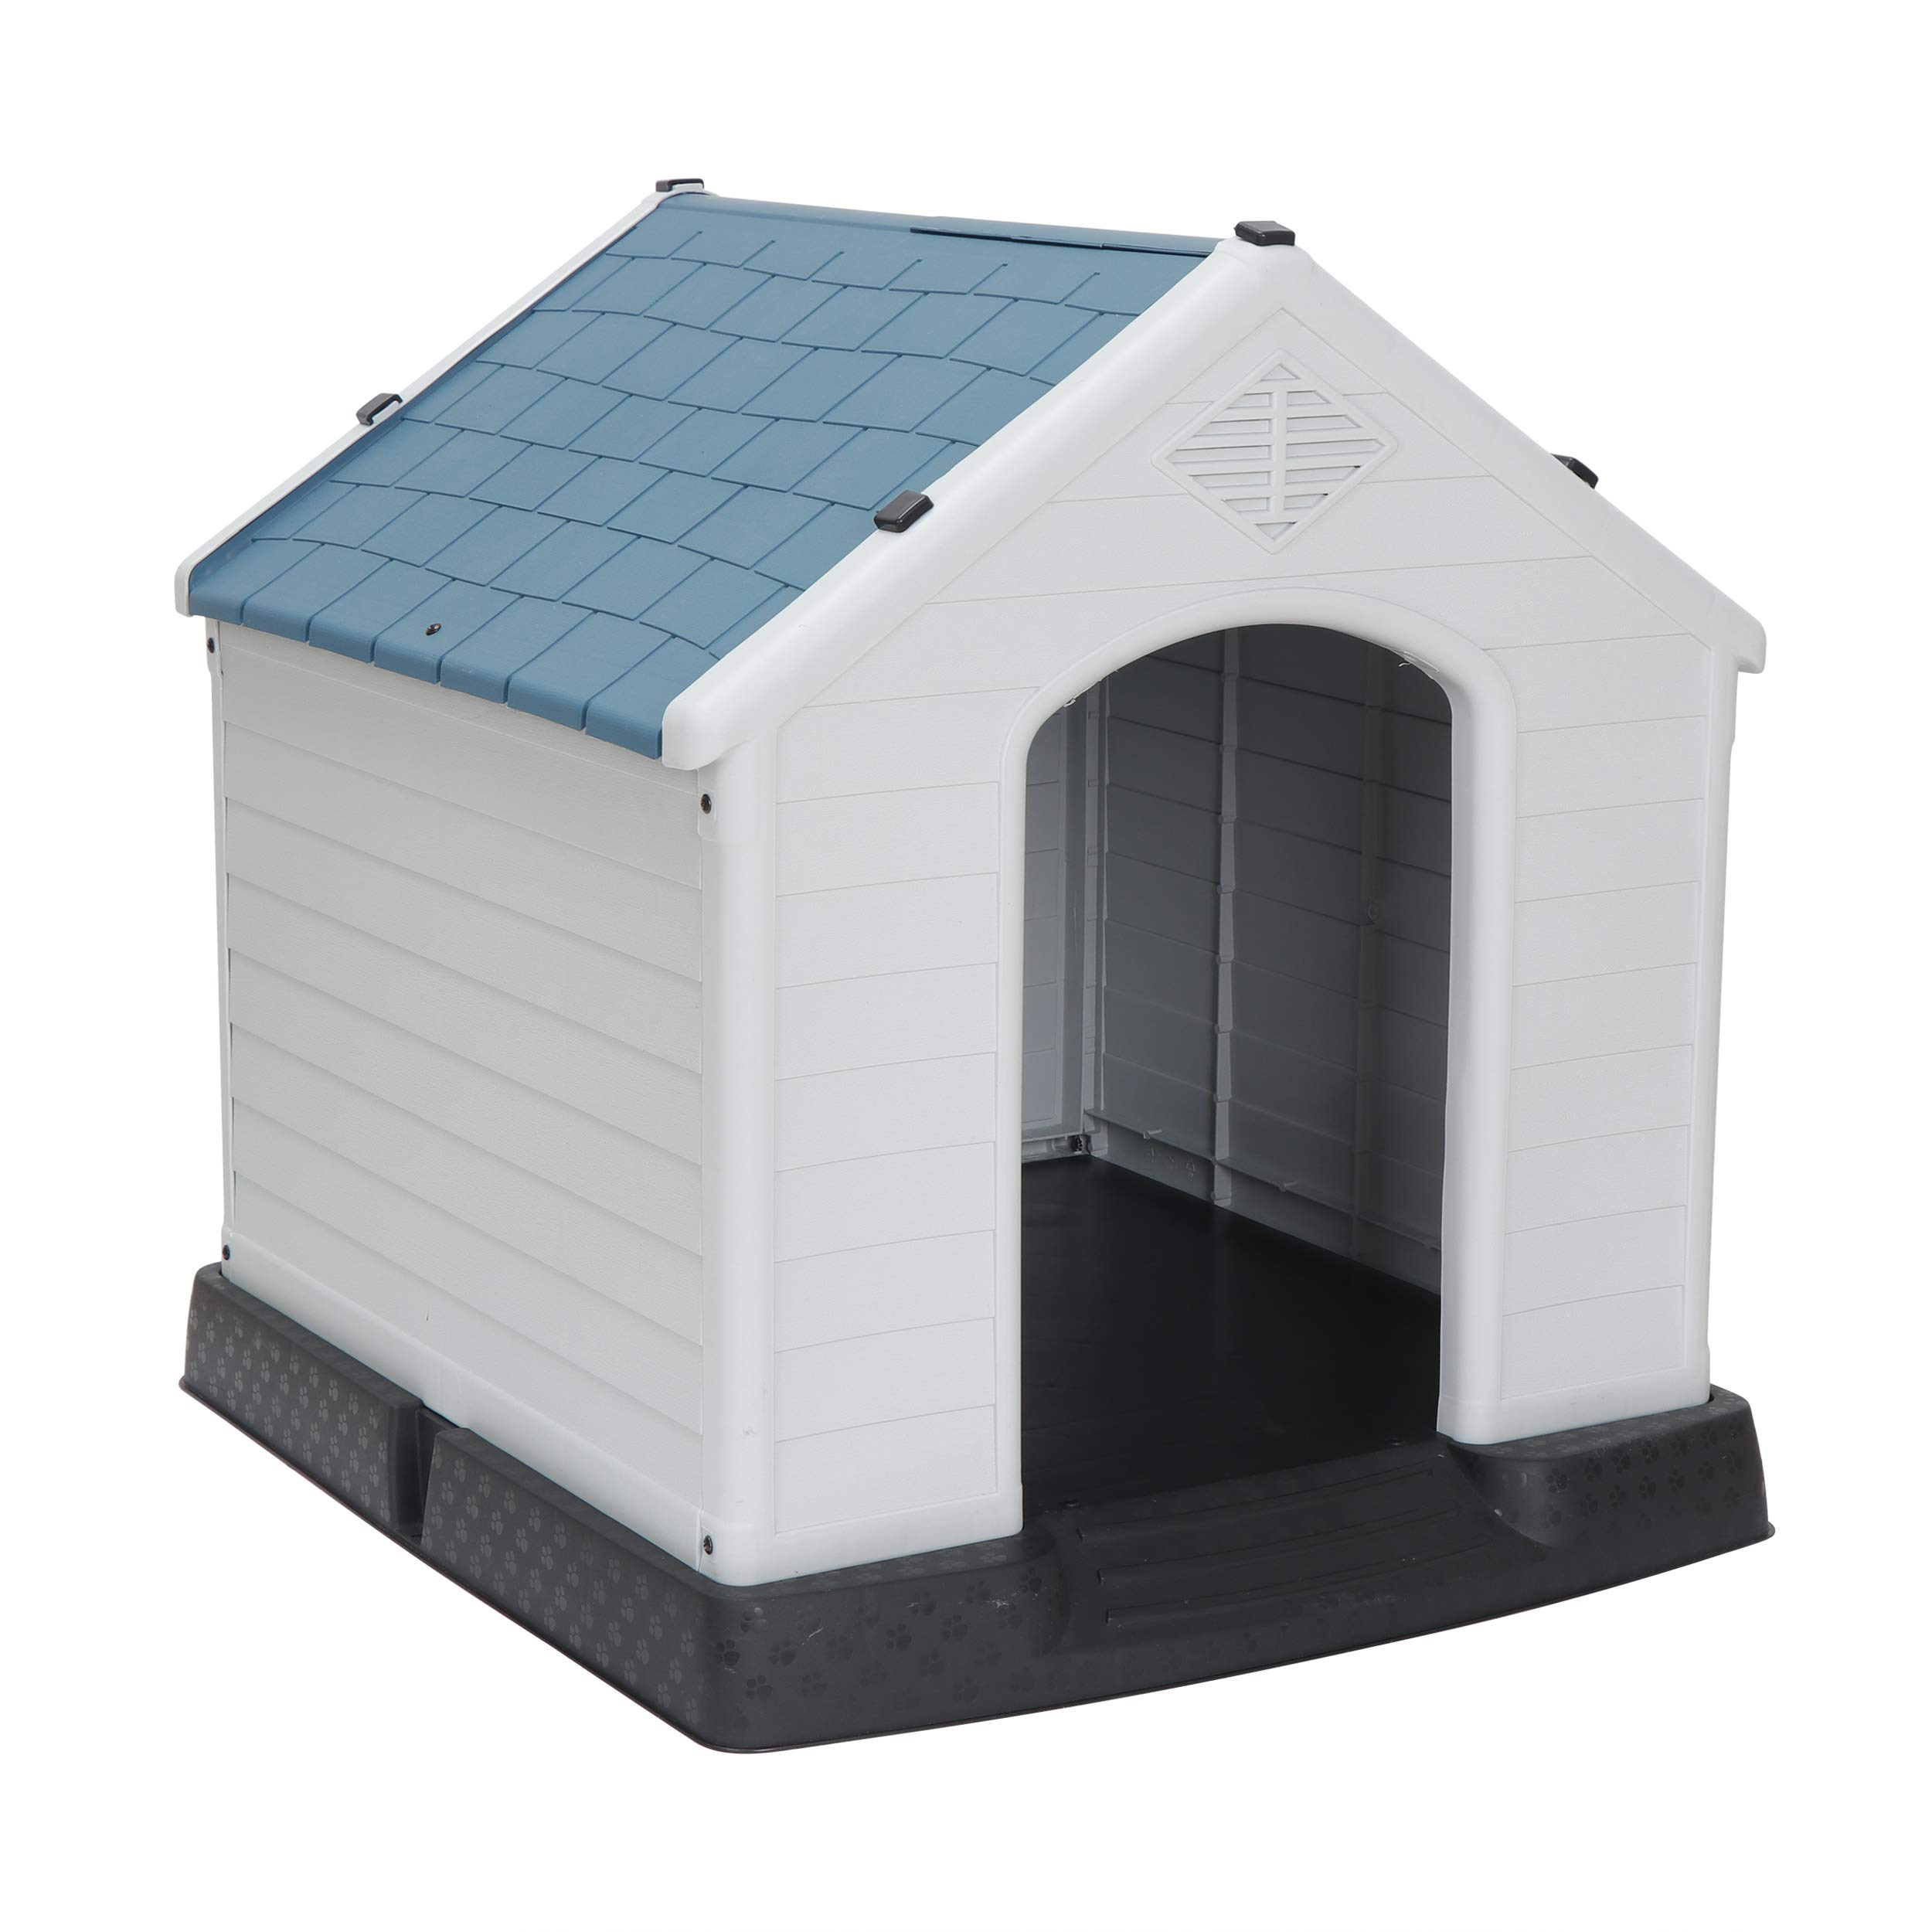 ZENY Plastic Dog House - Water Resistant Dog Kennel for Small to Large Sized Dogs All Weather Indoor Outdoor Doghouse Puppy Shelter by ZENY